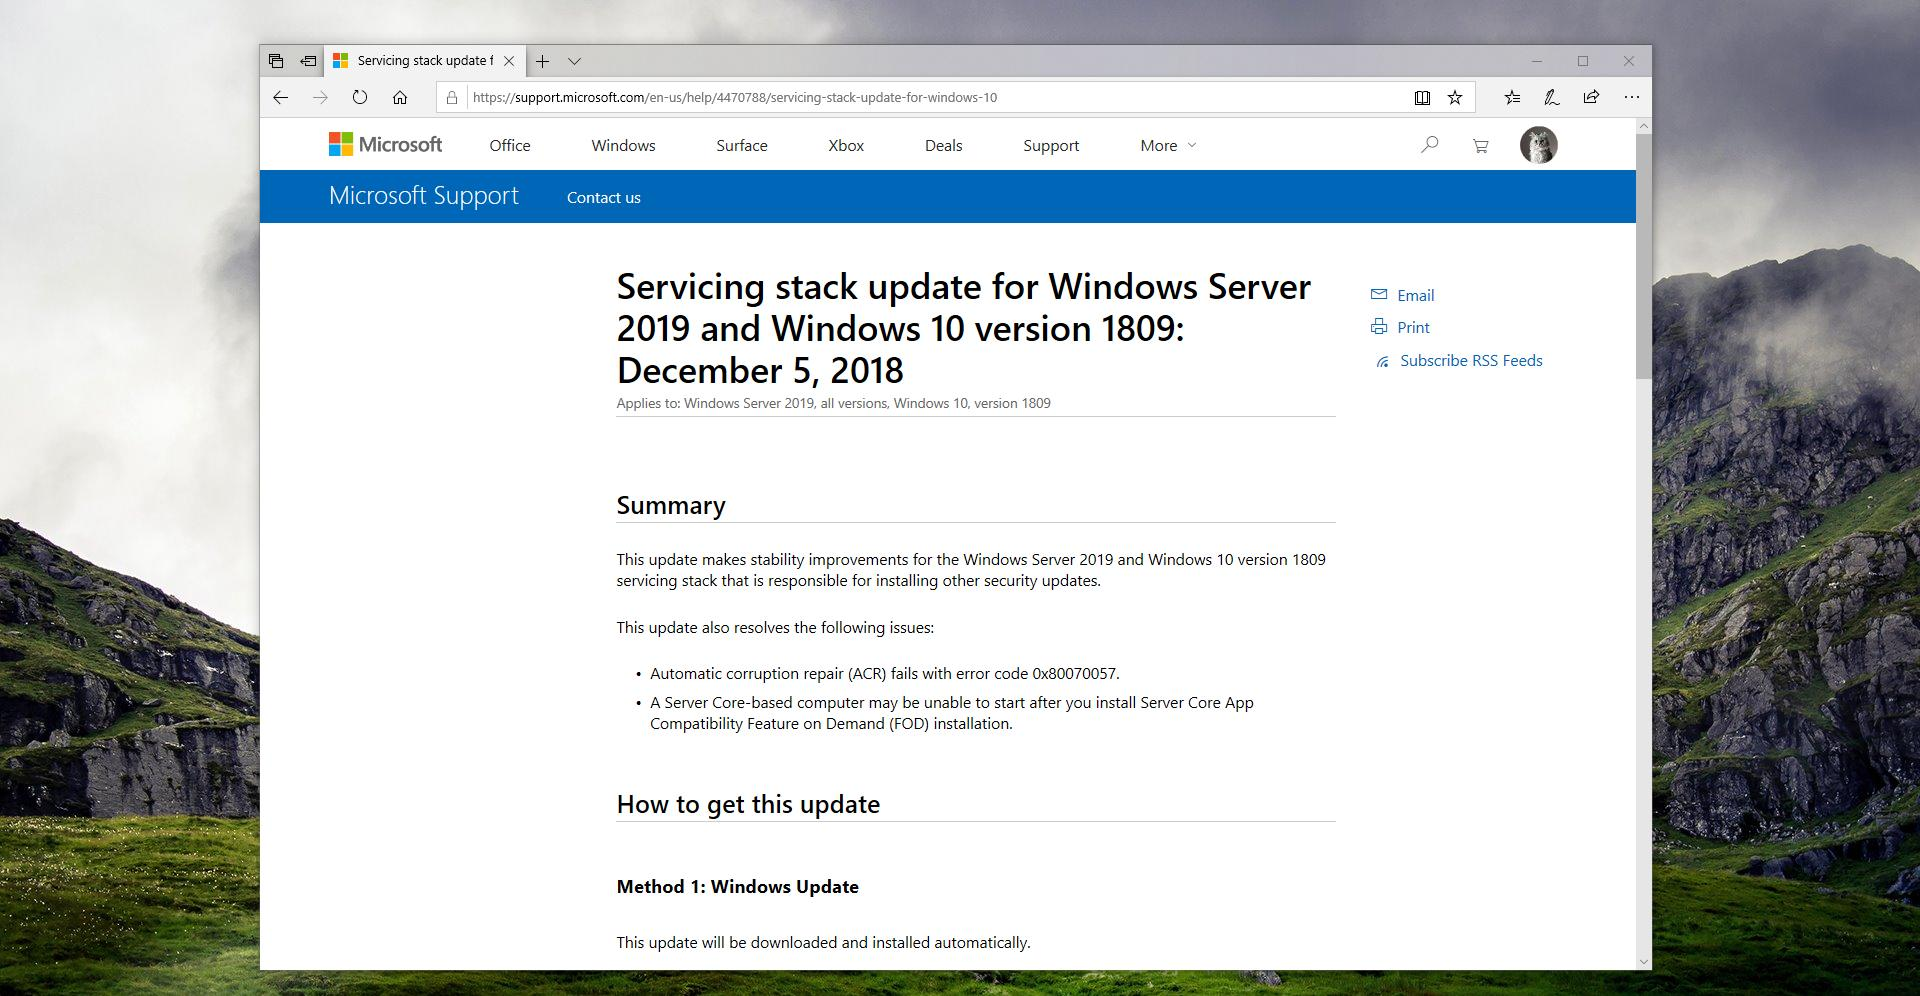 What Are Windows 10 Servicing Stack Updates And Why Do We